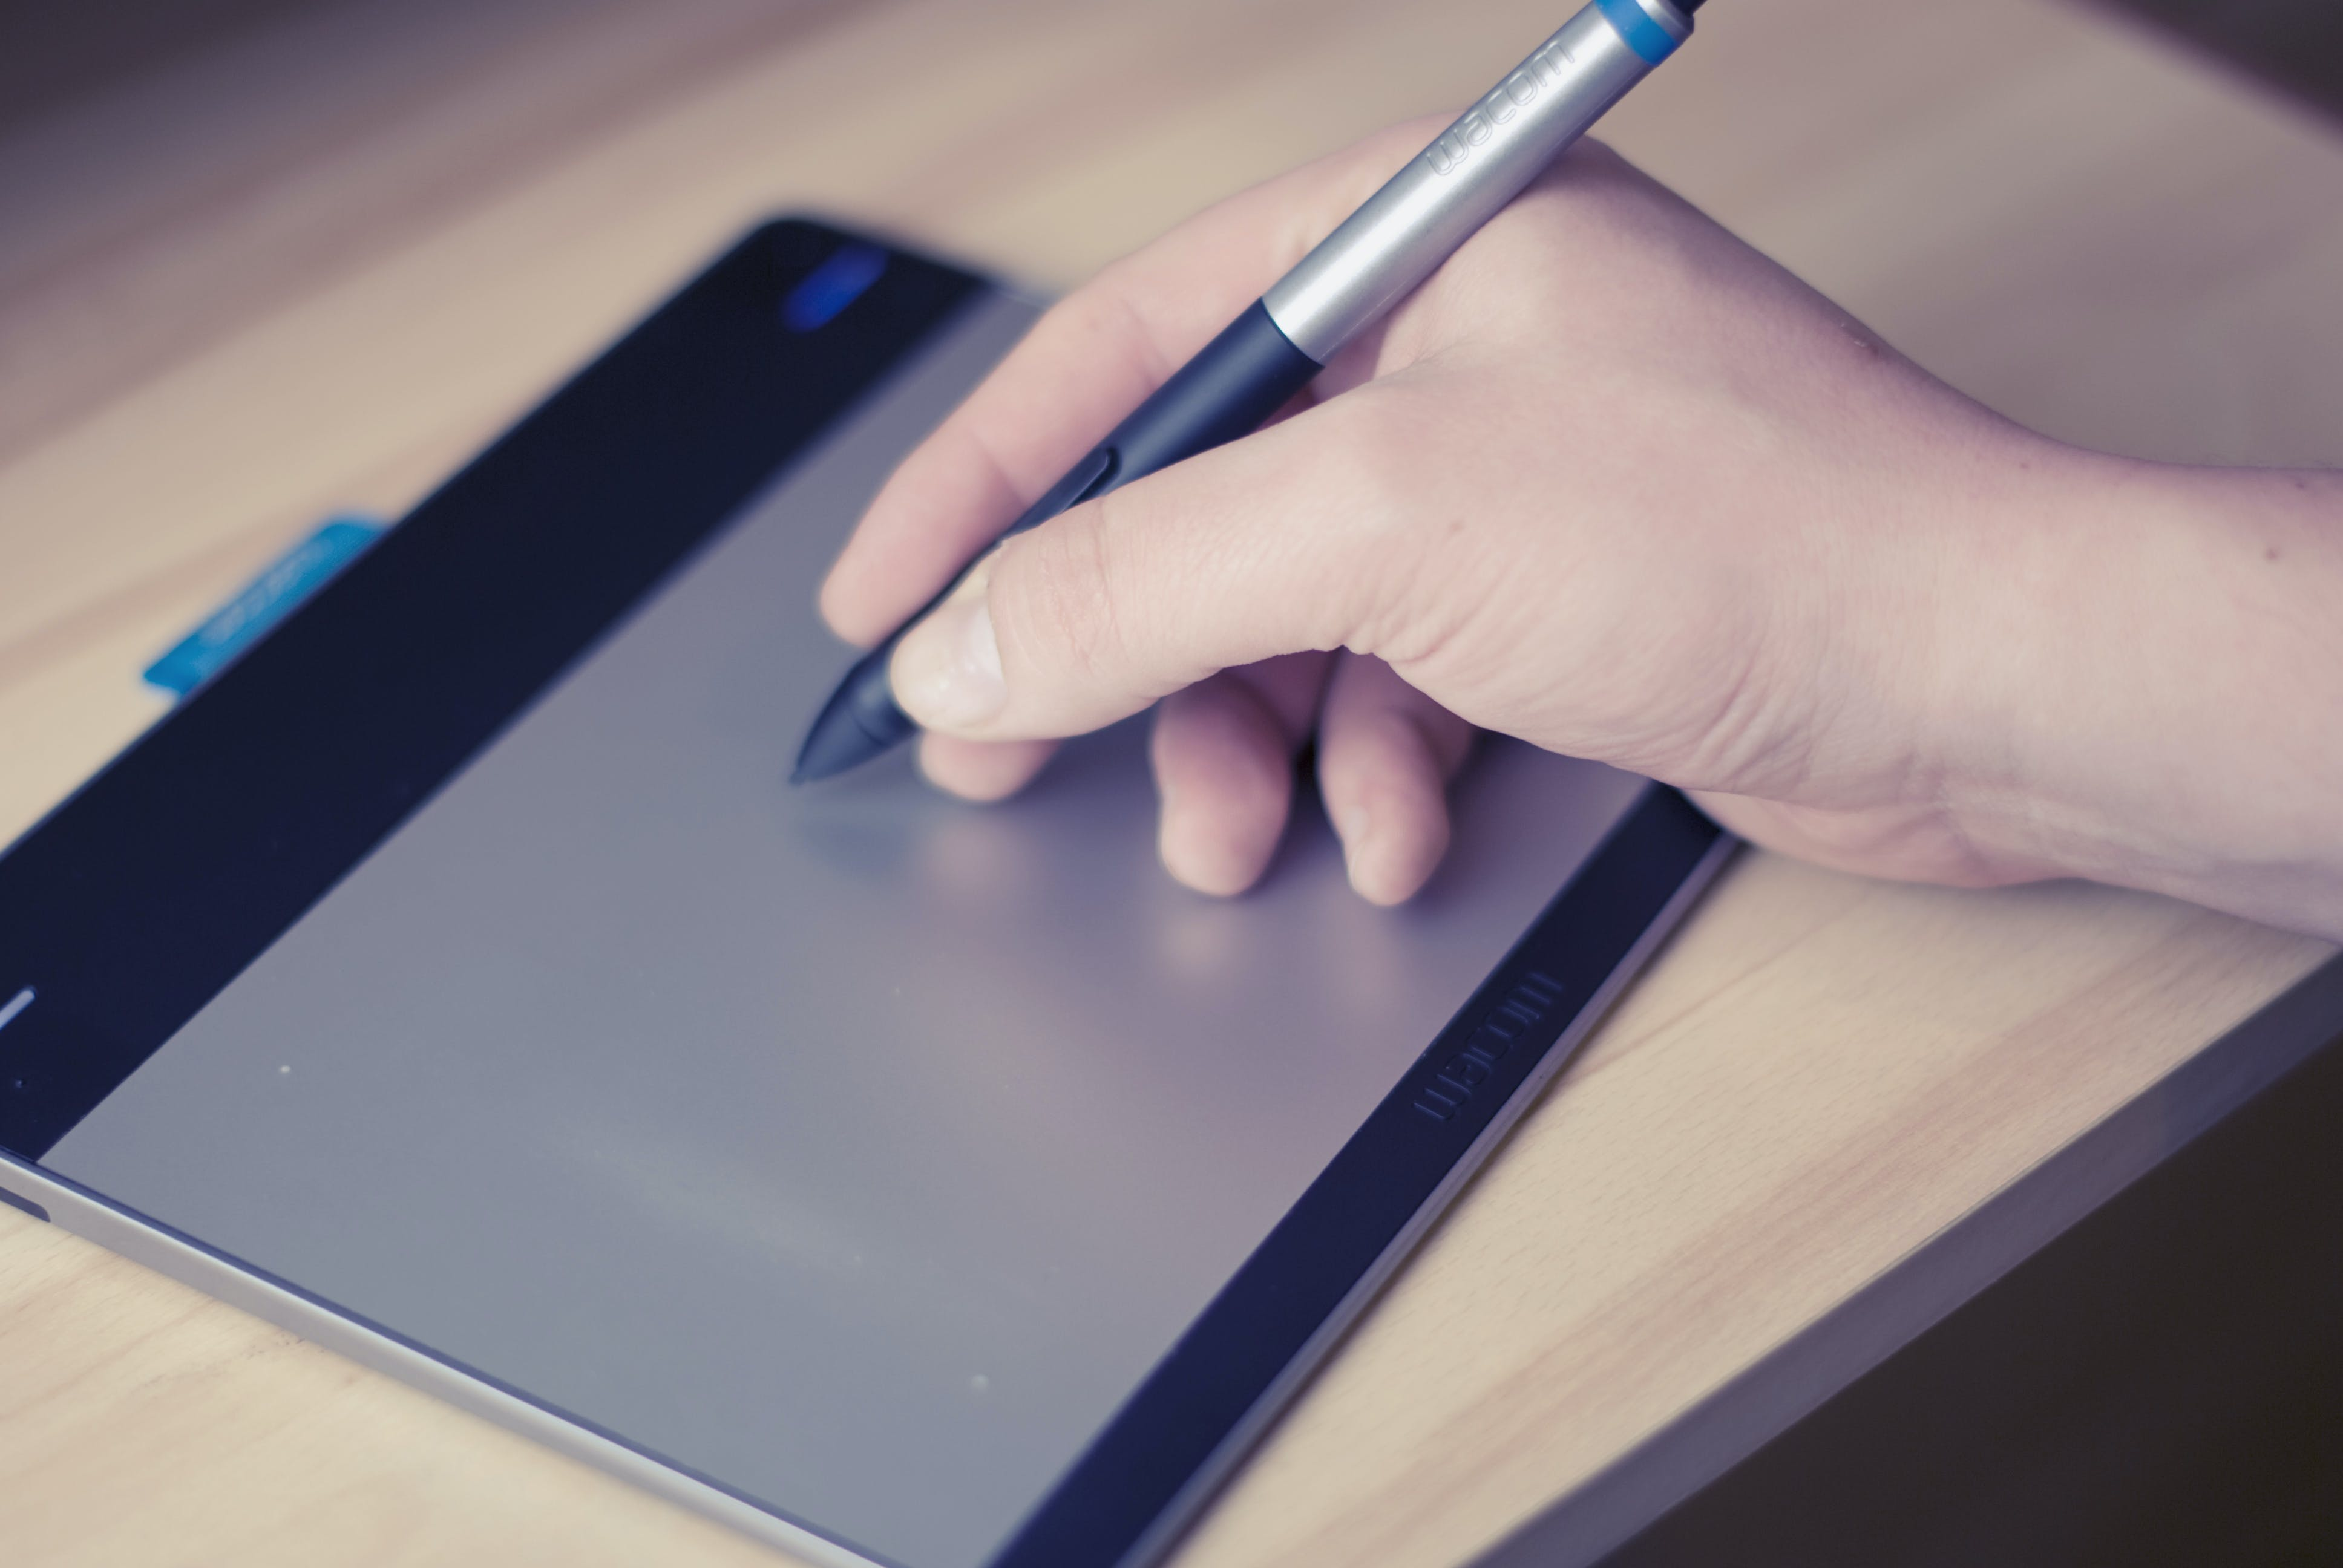 Person Holding Stylus Pen on Writing Pad